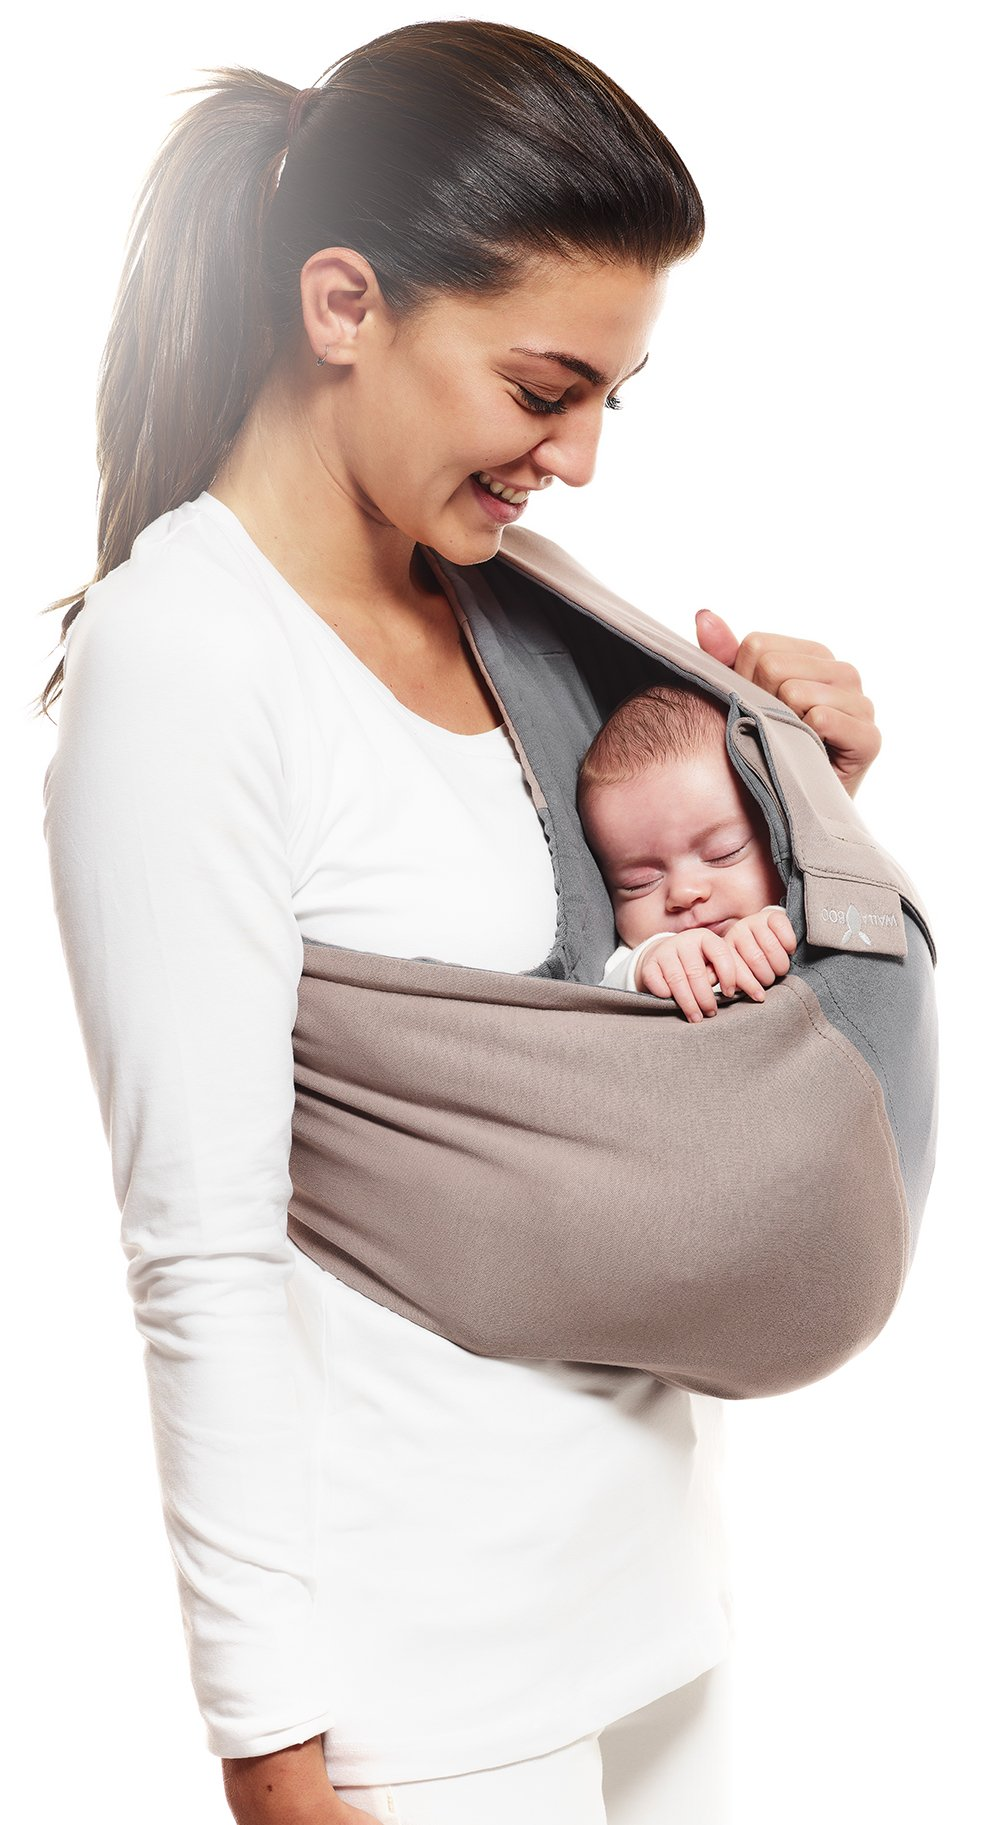 Wallaboo Wrap Sling Carrier Connection, Easy Adjustable, Ergonomic, 3 Carrying Positions, Newborn 8lbs to 33 lbs, Soft Breathable Cotton, 3 Sitting Positions, EU Safety Tested, Color: Taupe / Grey Wallaboo Ergonomically correct design with three natural positions: sleep, sit and active- one size fits all Can be used from premature baby through to 33lbs - with easy-to-use features like a full-front opening and an adjustable back Single piece of fabric, no straps, belts or buckles - Partly padded to give extra comfort- No wrapping, no hardware. Ready to wear 8